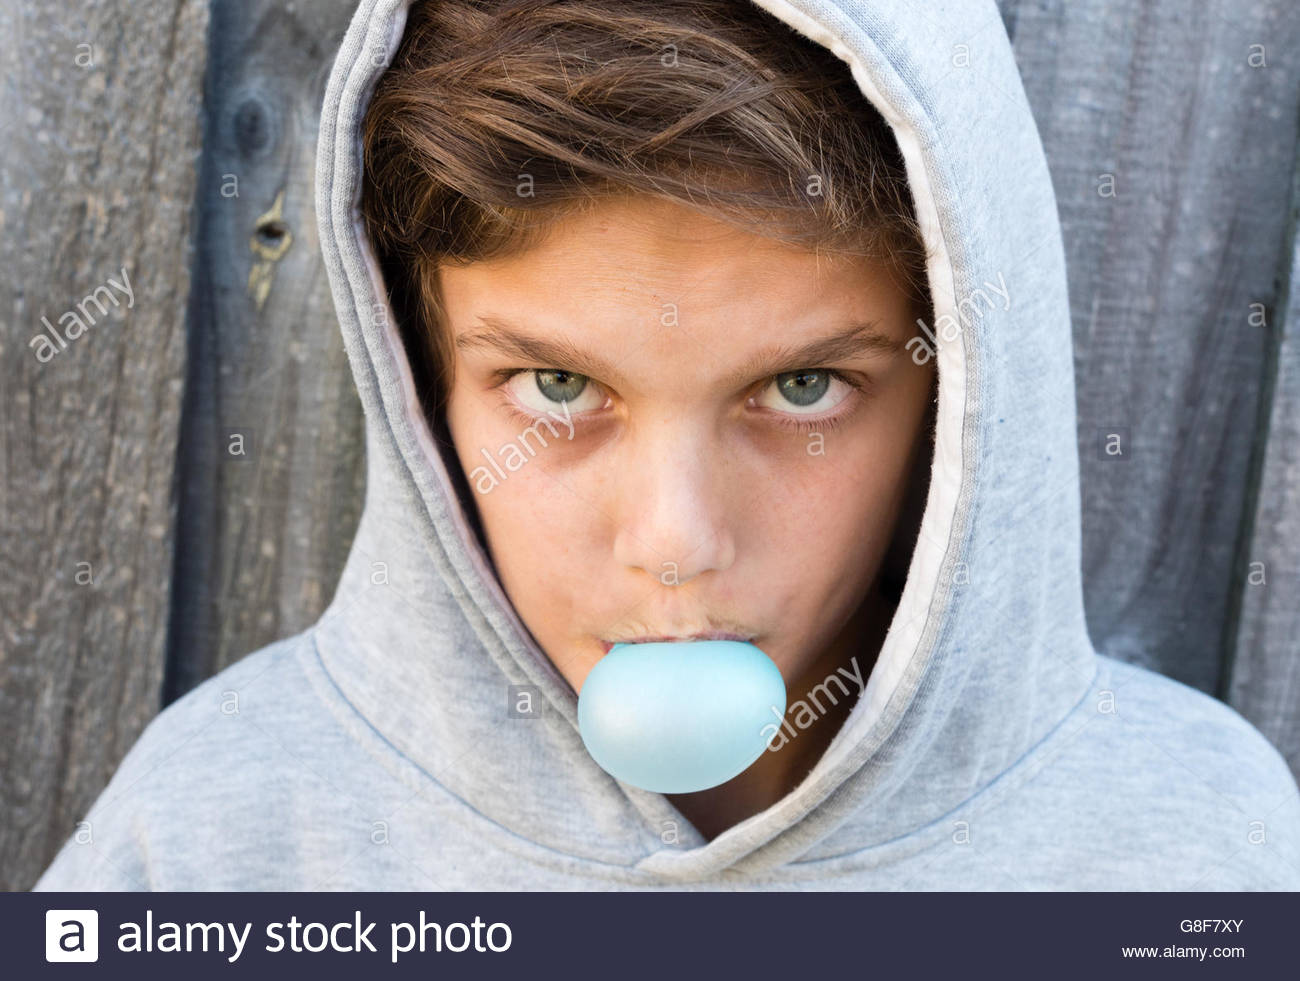 Portrait of teenage boy agressif avec hoodie blowing bubble gum contre la clôture en bois gris Photo Stock